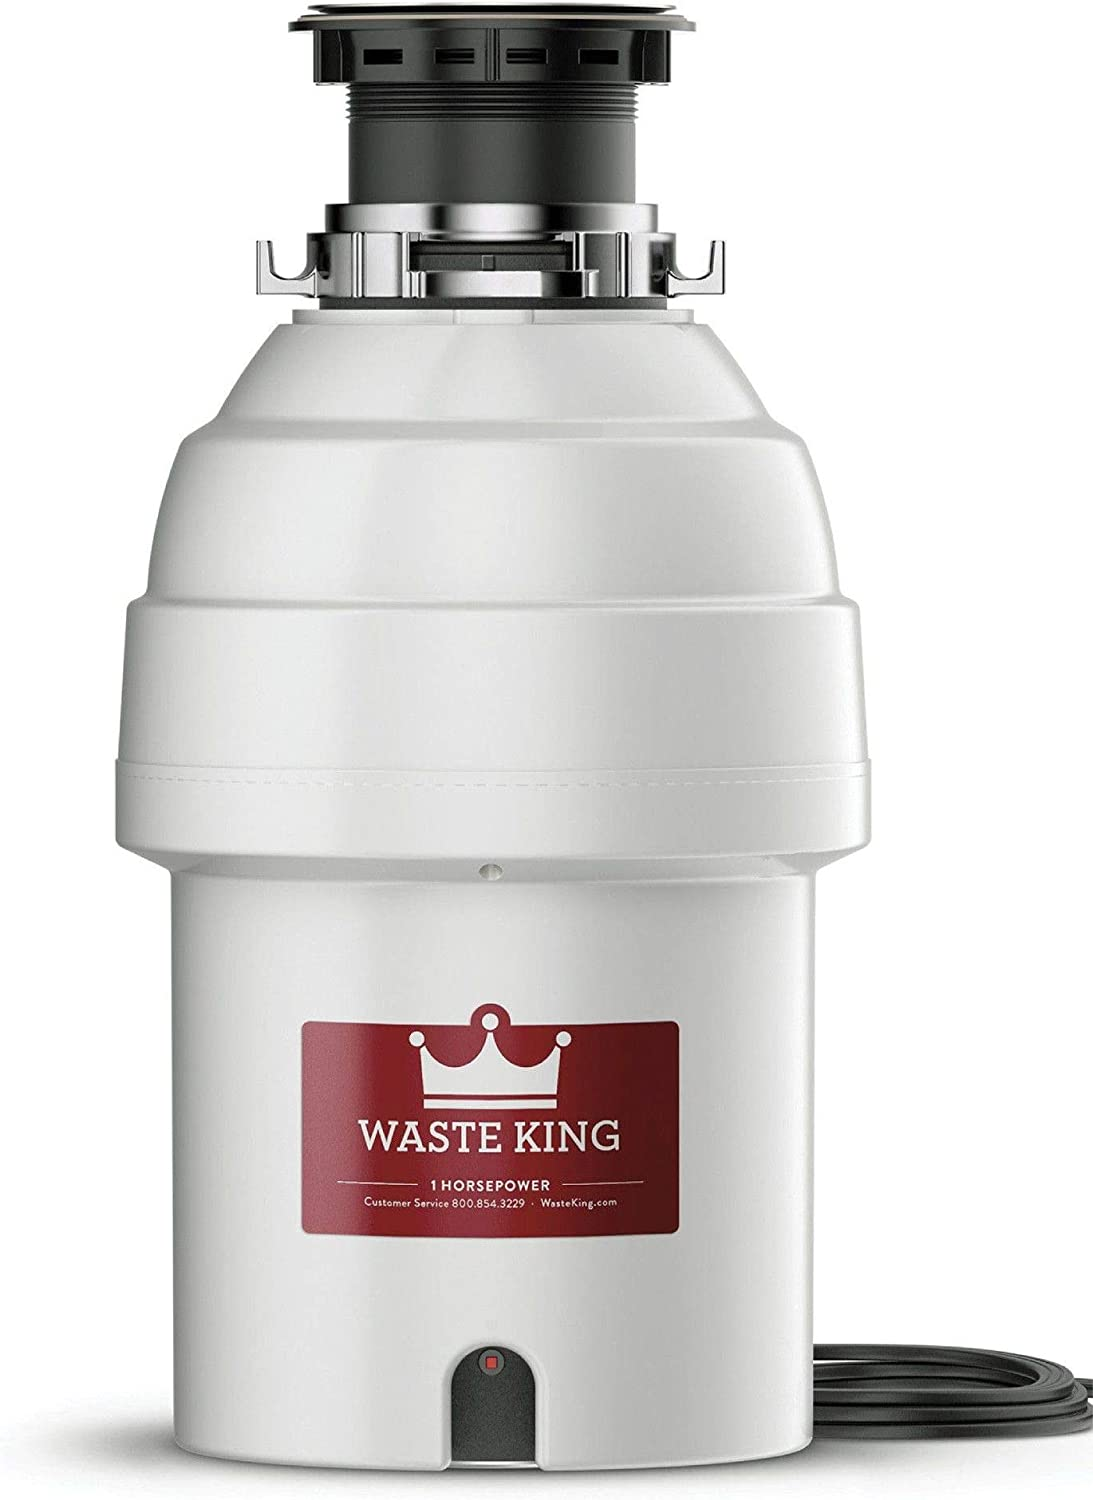 2.Waste King L-8000 Garbage Disposal